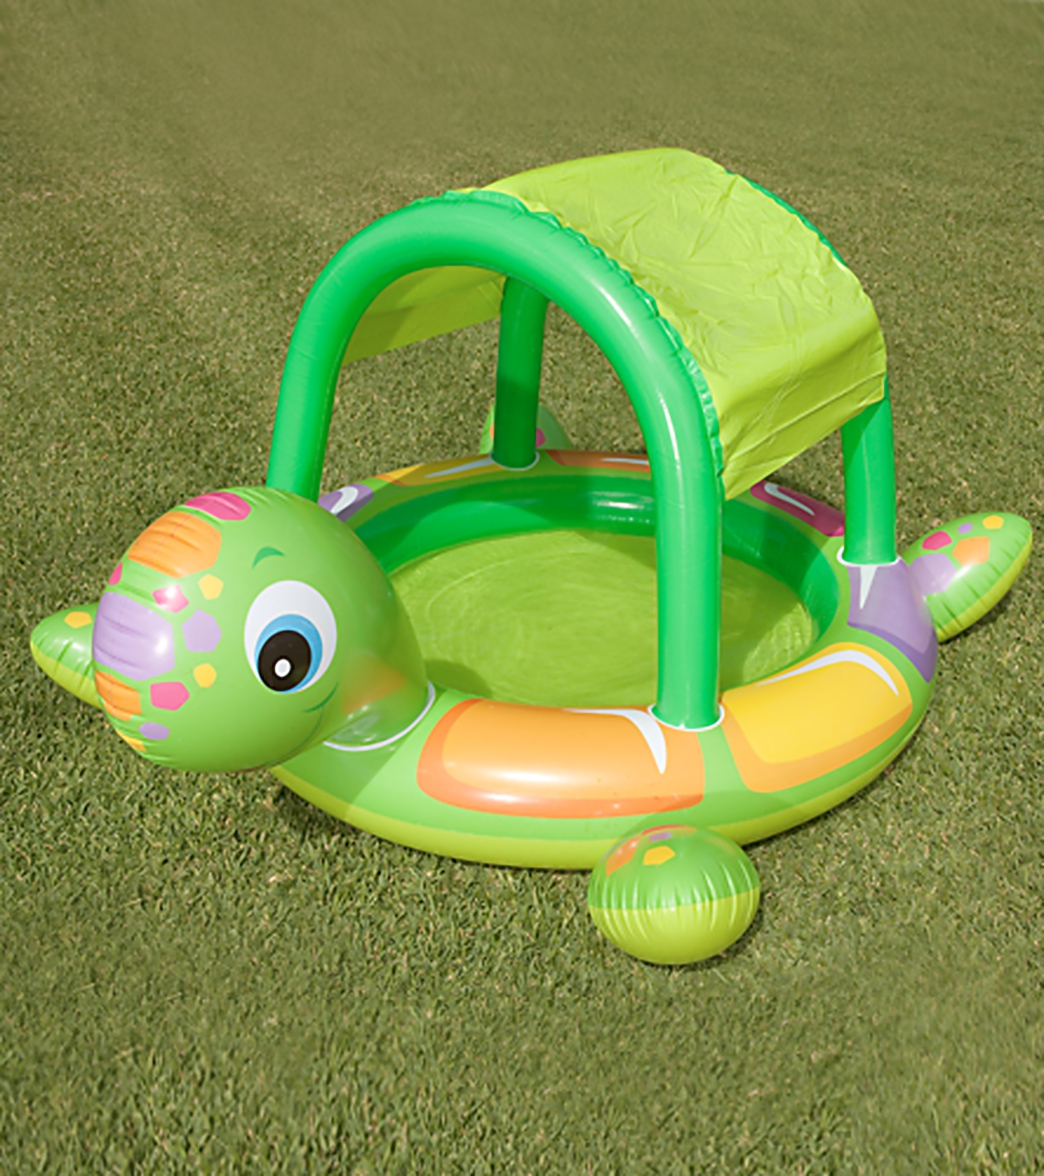 Intex Turtle Baby Inflatable Pool At Swimoutlet Com